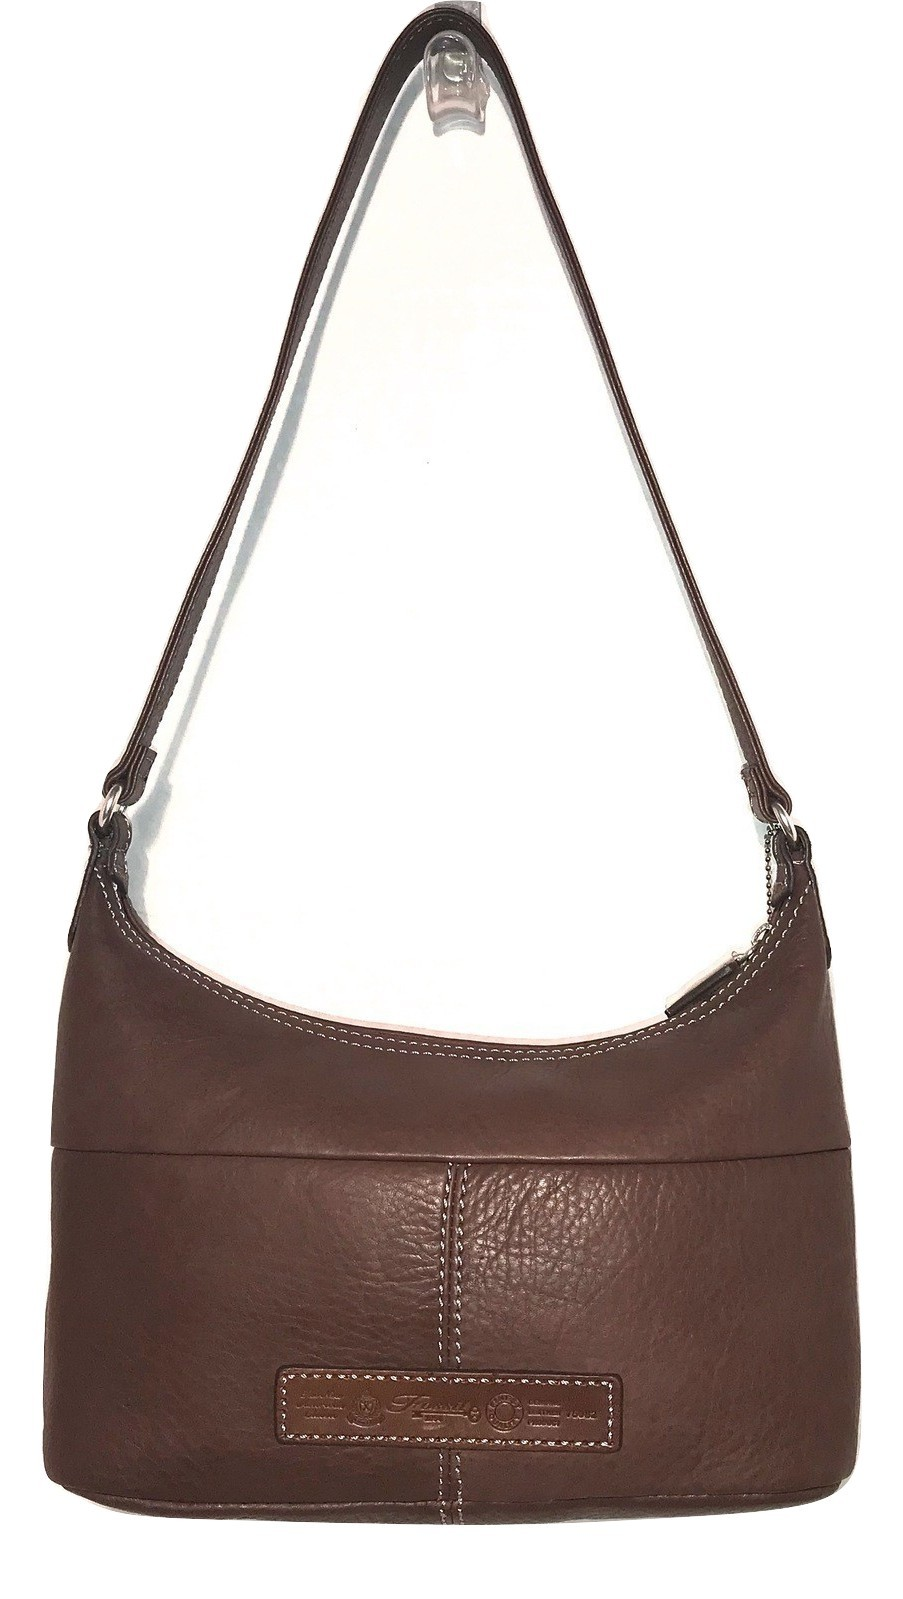 Fossil ~ Soft Brown Pebble Leather Shoulder Bag w/ Flap Pocket Front